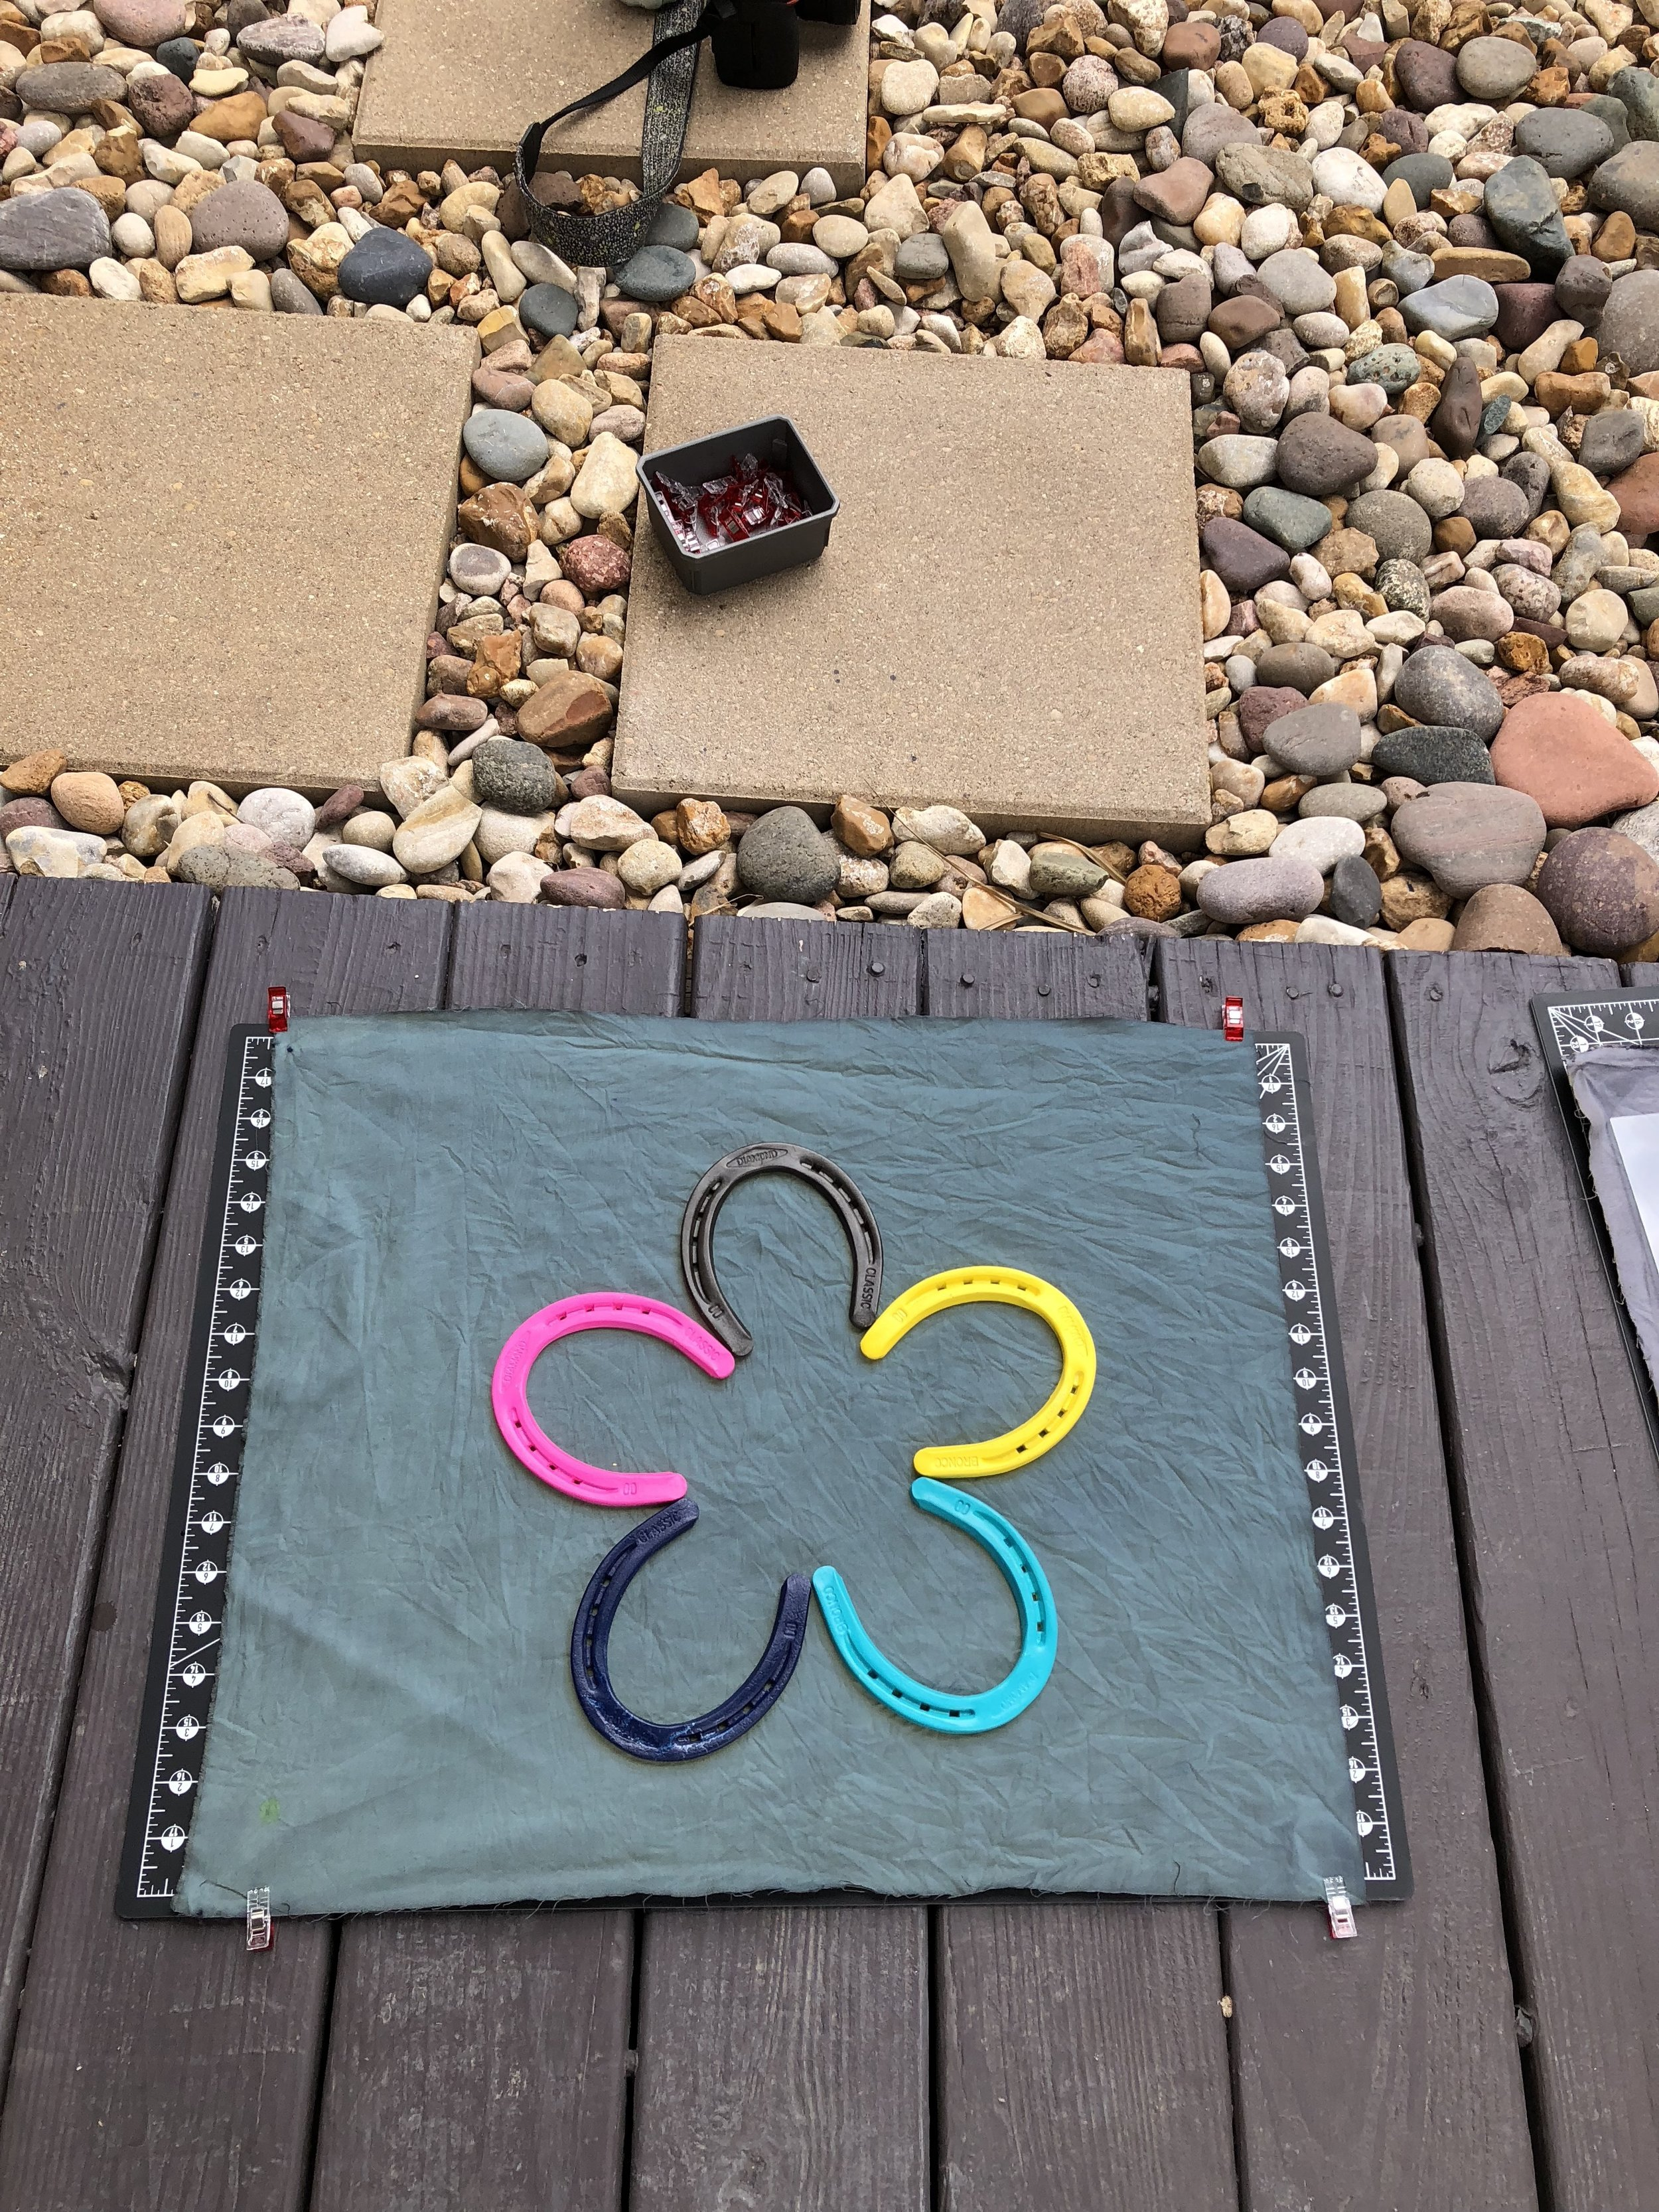 How fun are these colored horseshoes?!